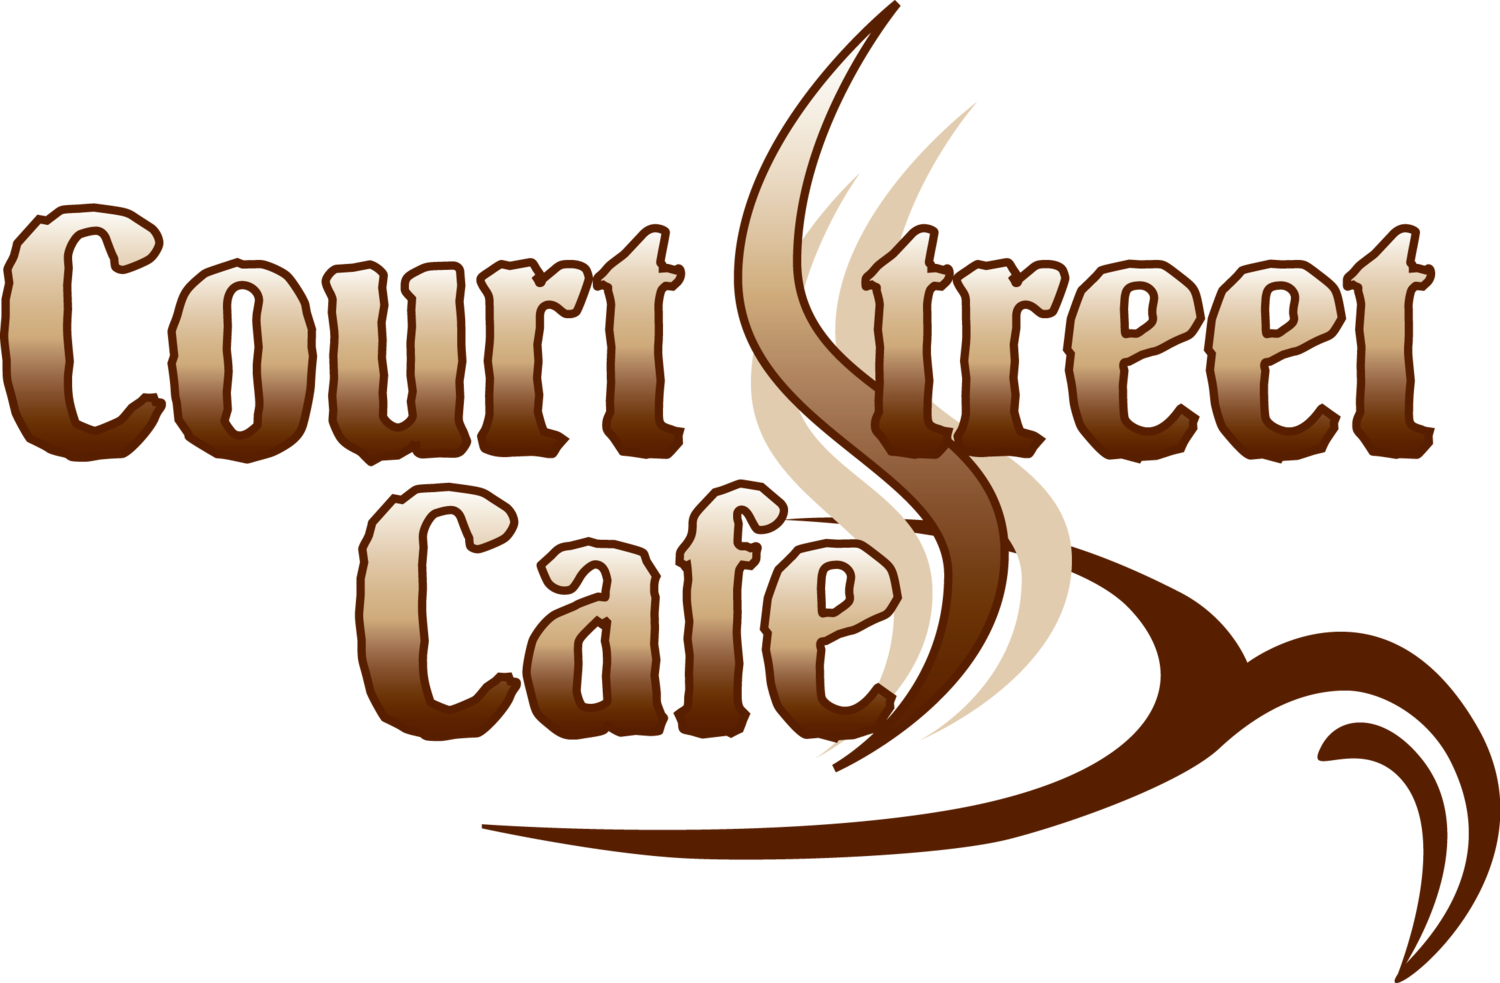 Court Street Cafe